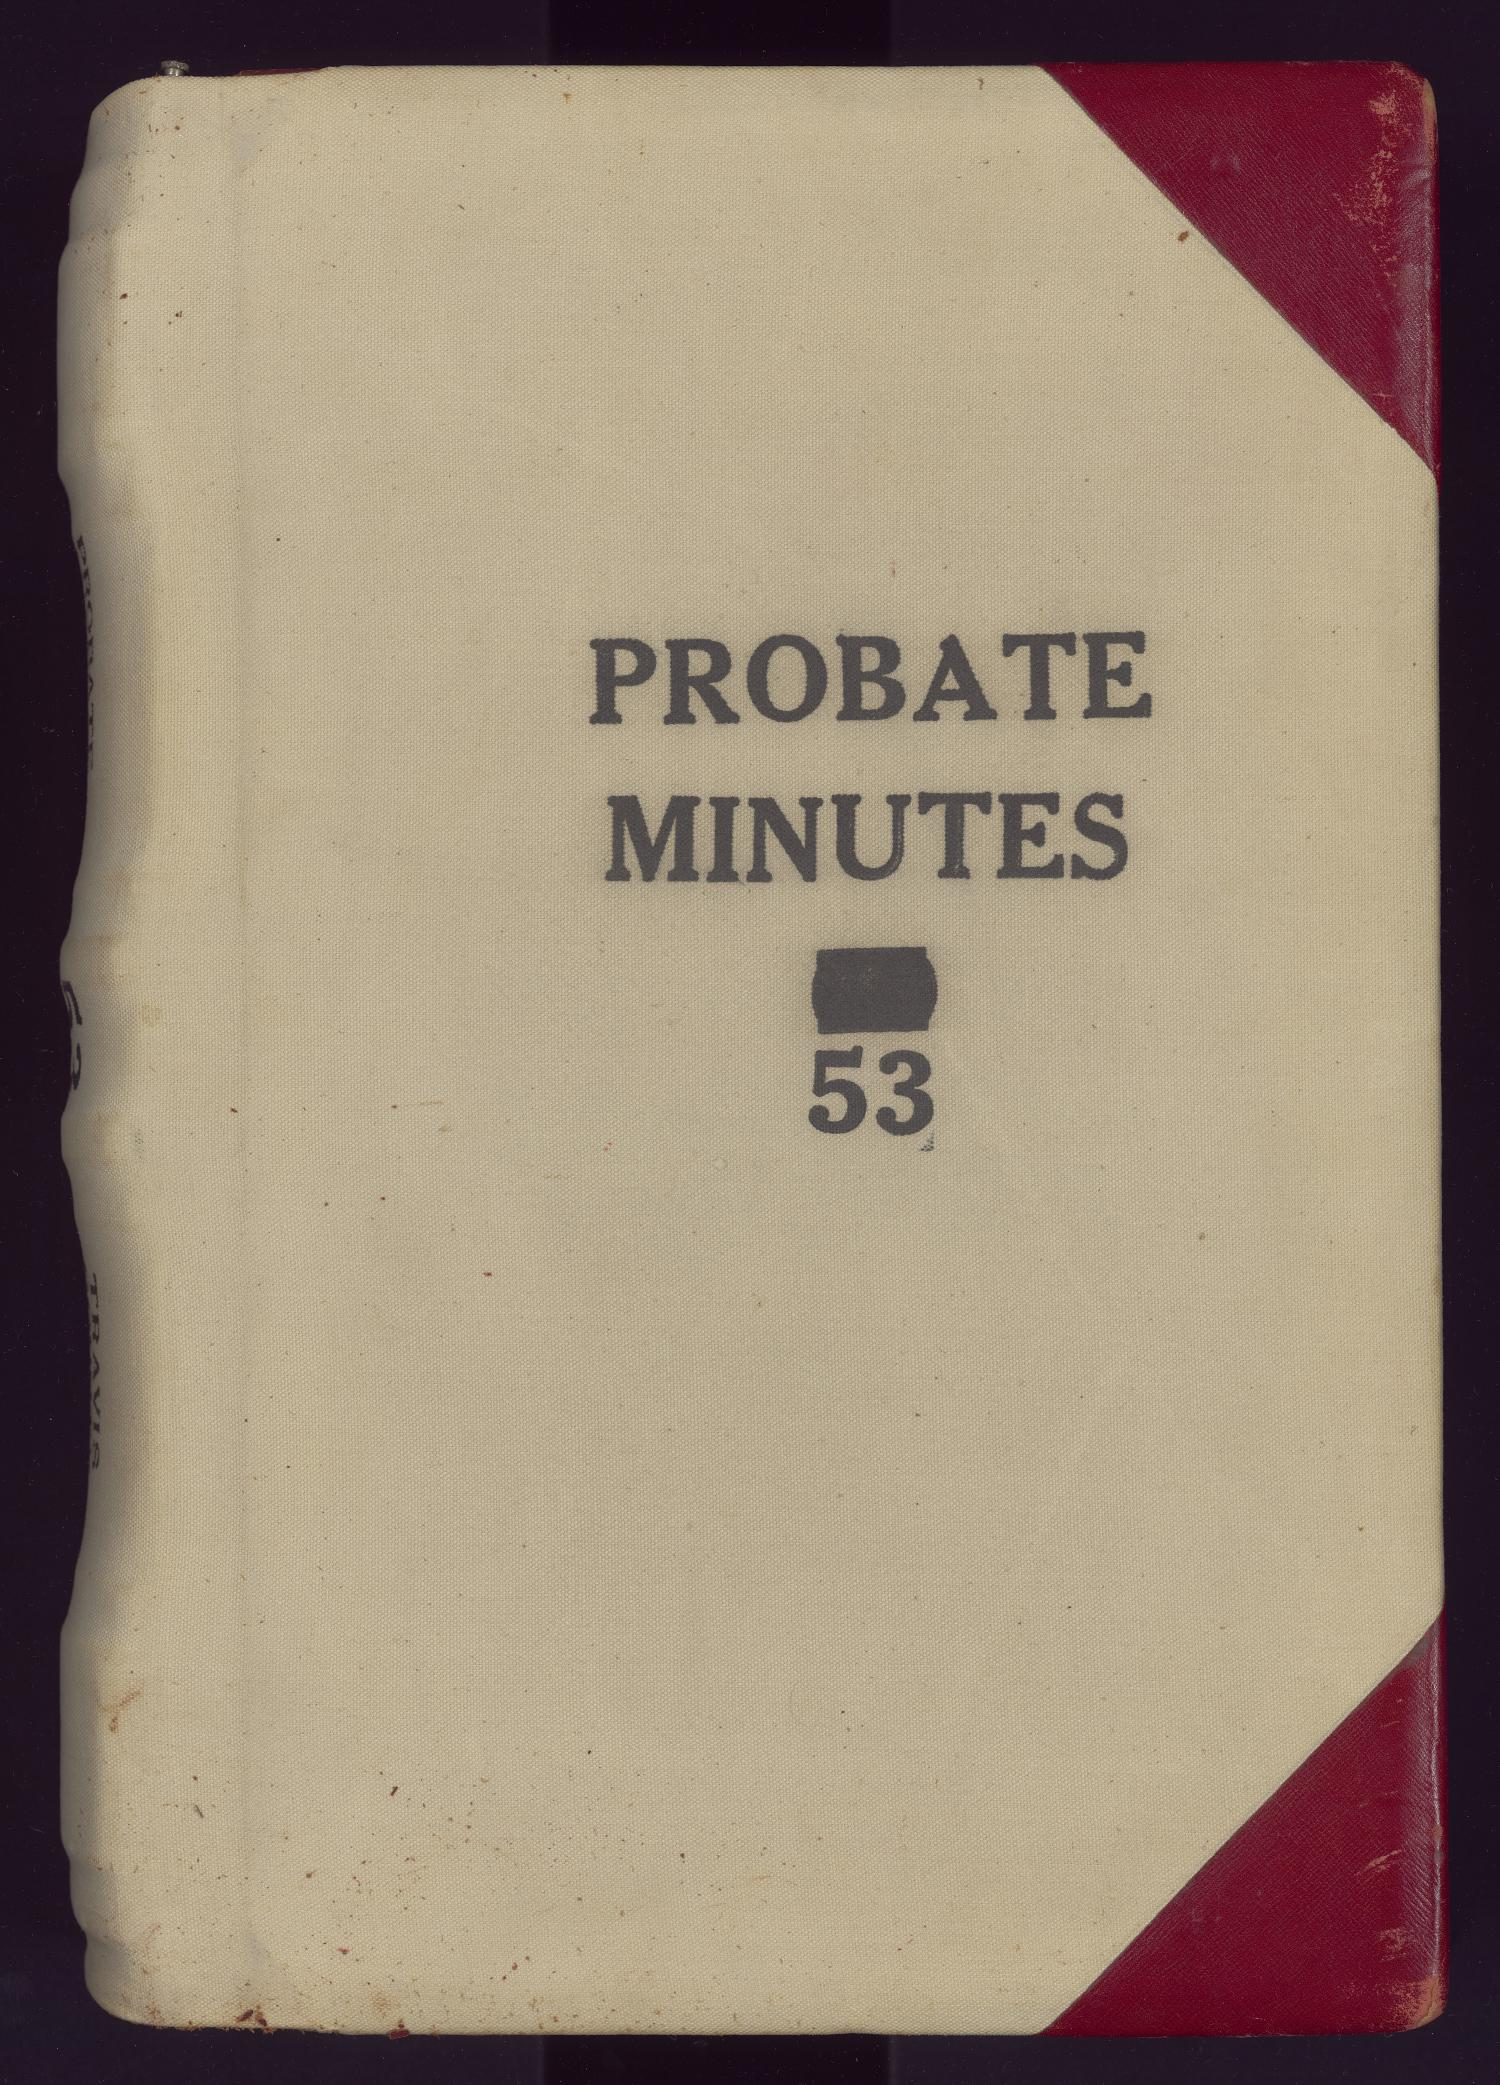 Travis County Probate Records County Clerk Probate Minutes 53  Page Front cover  The Portal